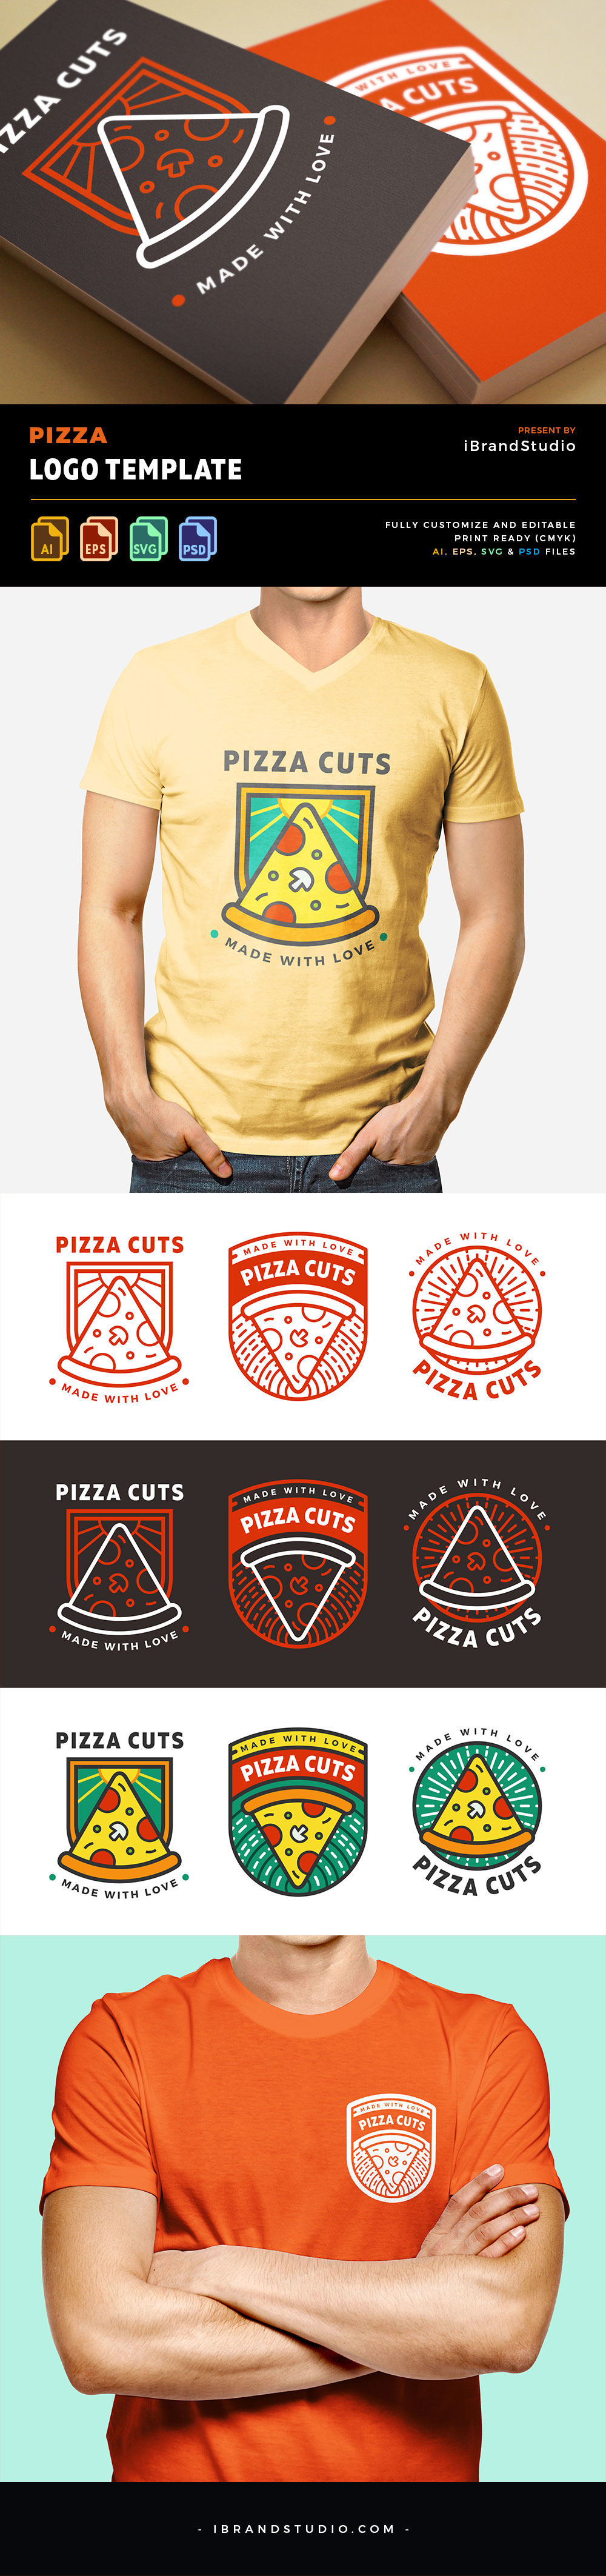 Free Logo for Pizza Business Preview